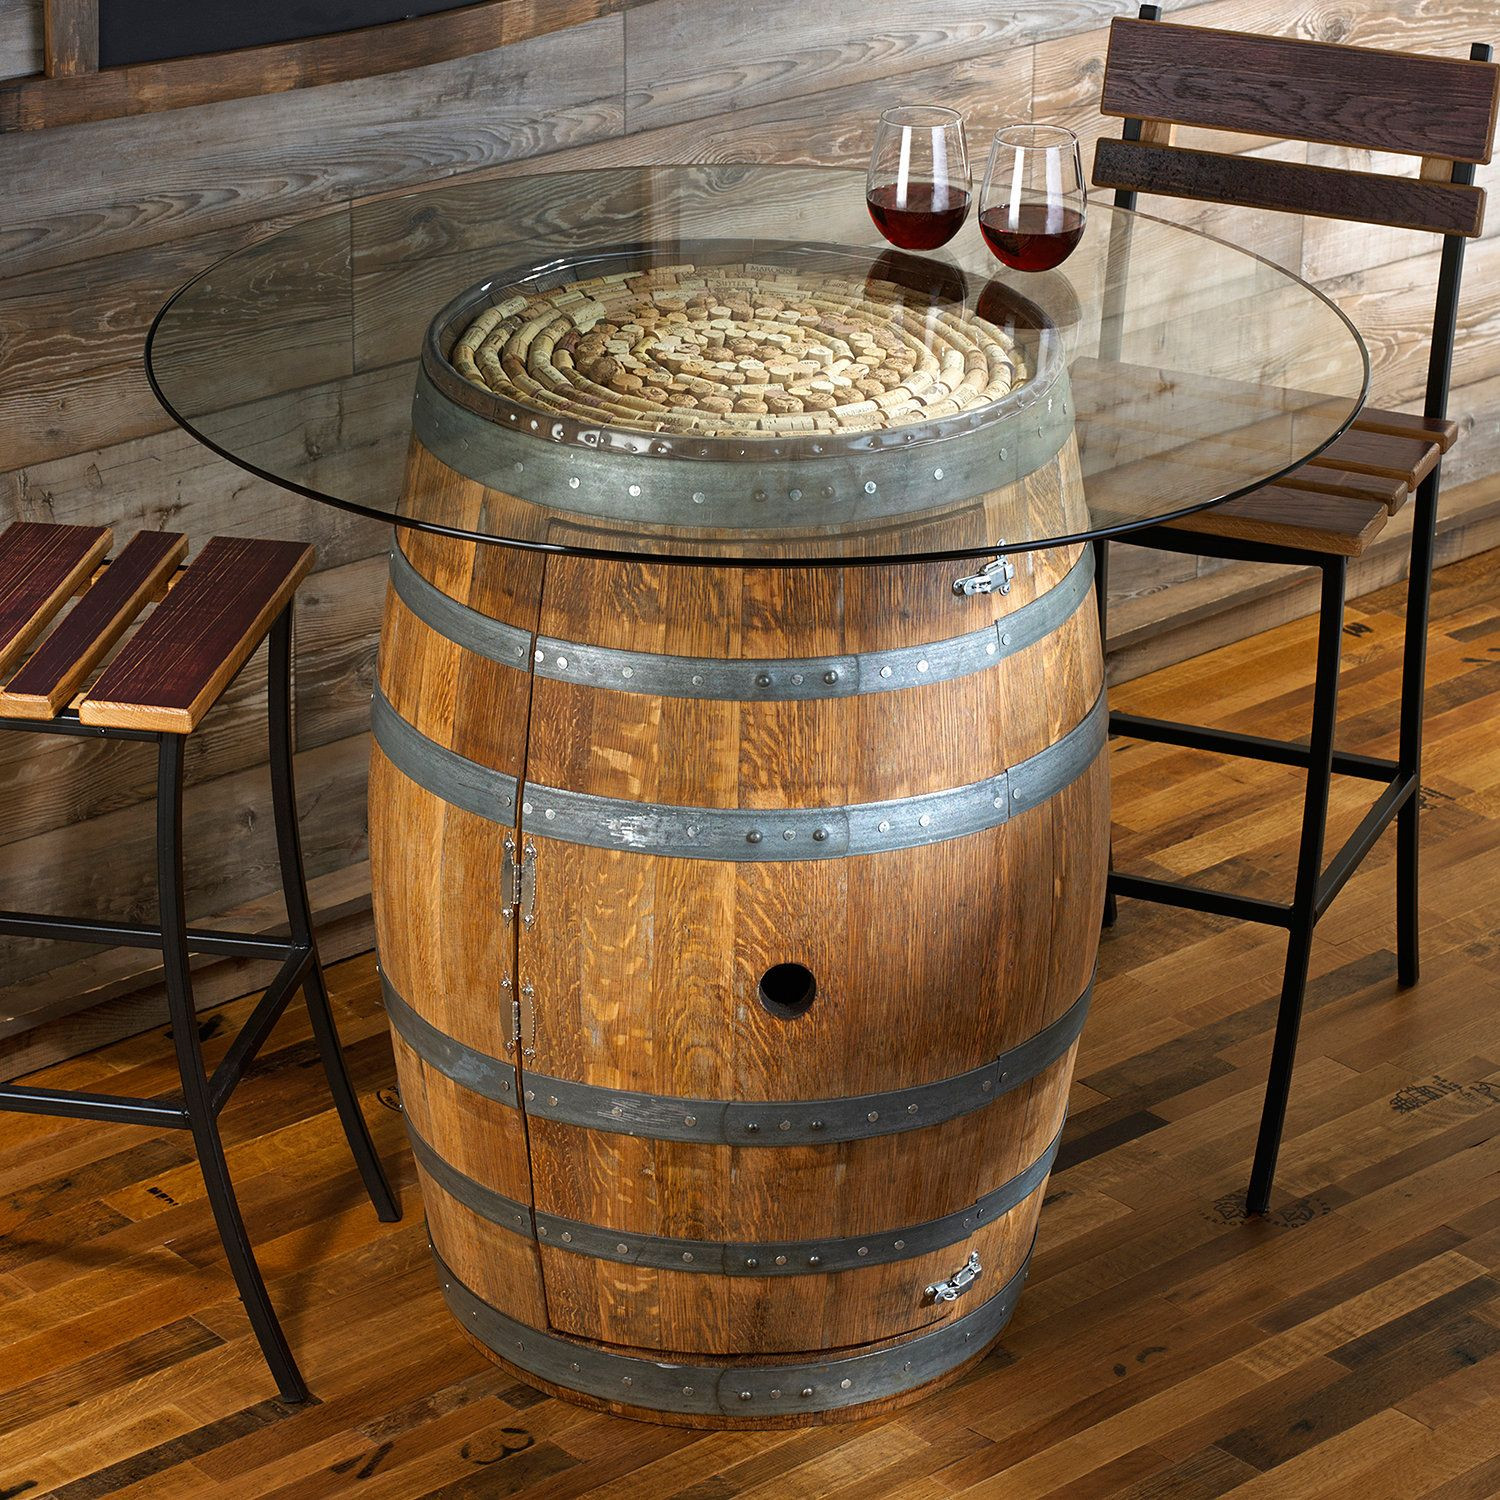 Best ideas about DIY Wine Barrel Table . Save or Pin Reclaimed Barrel Dining Table Now.